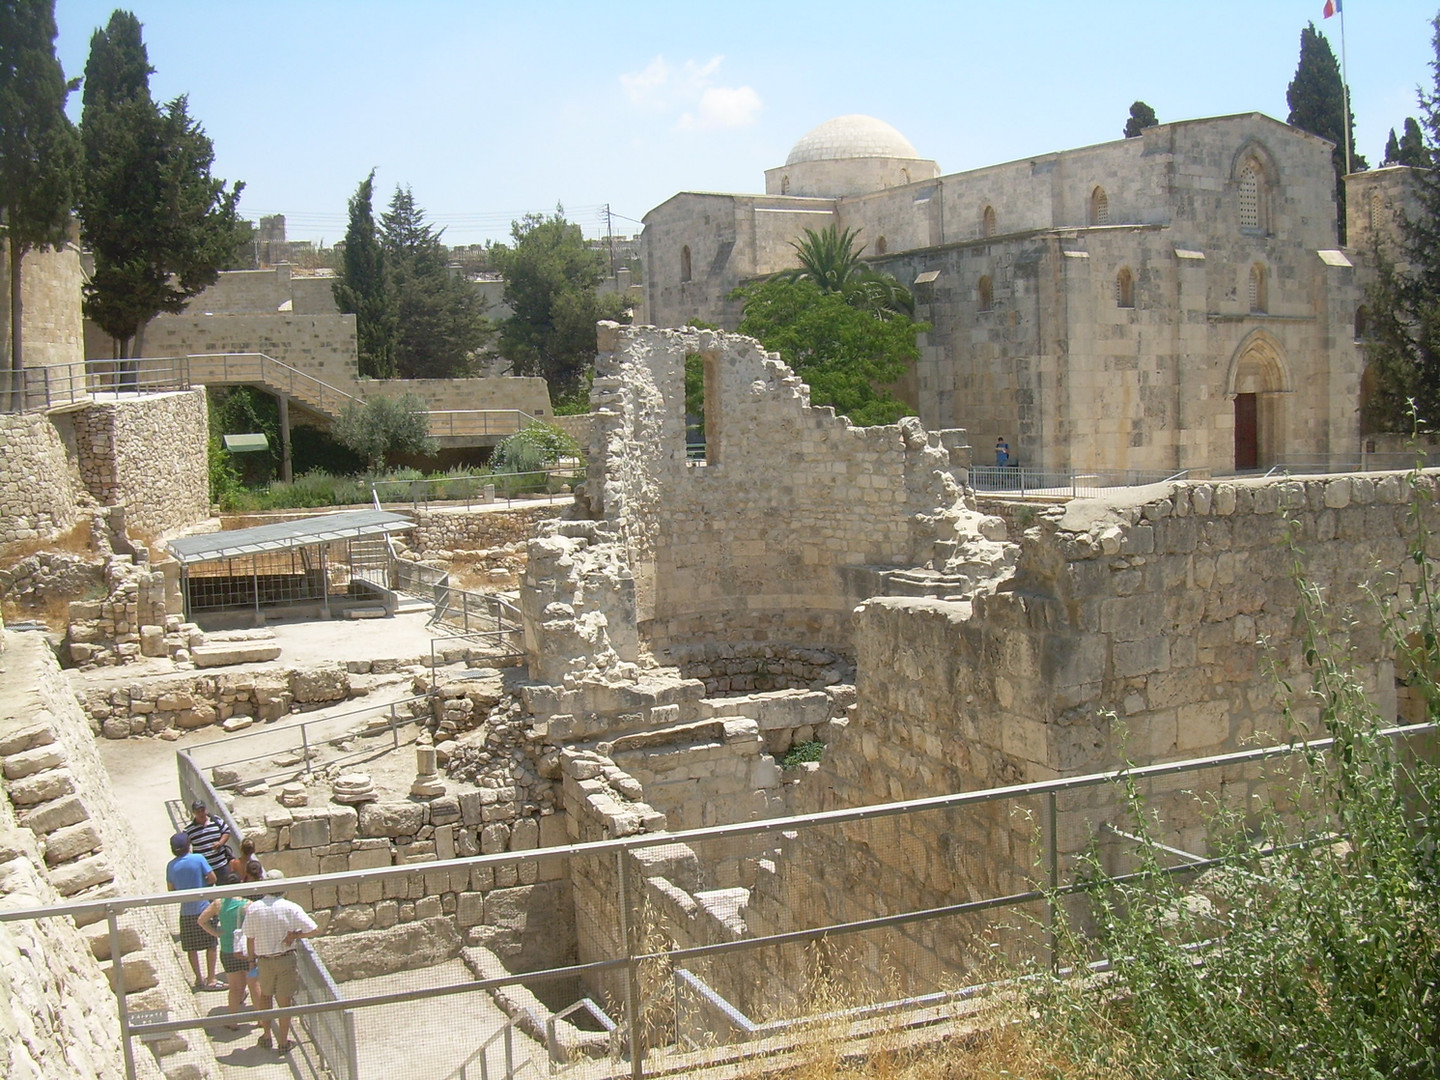 Pool of Bethesda St. Anne Church9.jpg